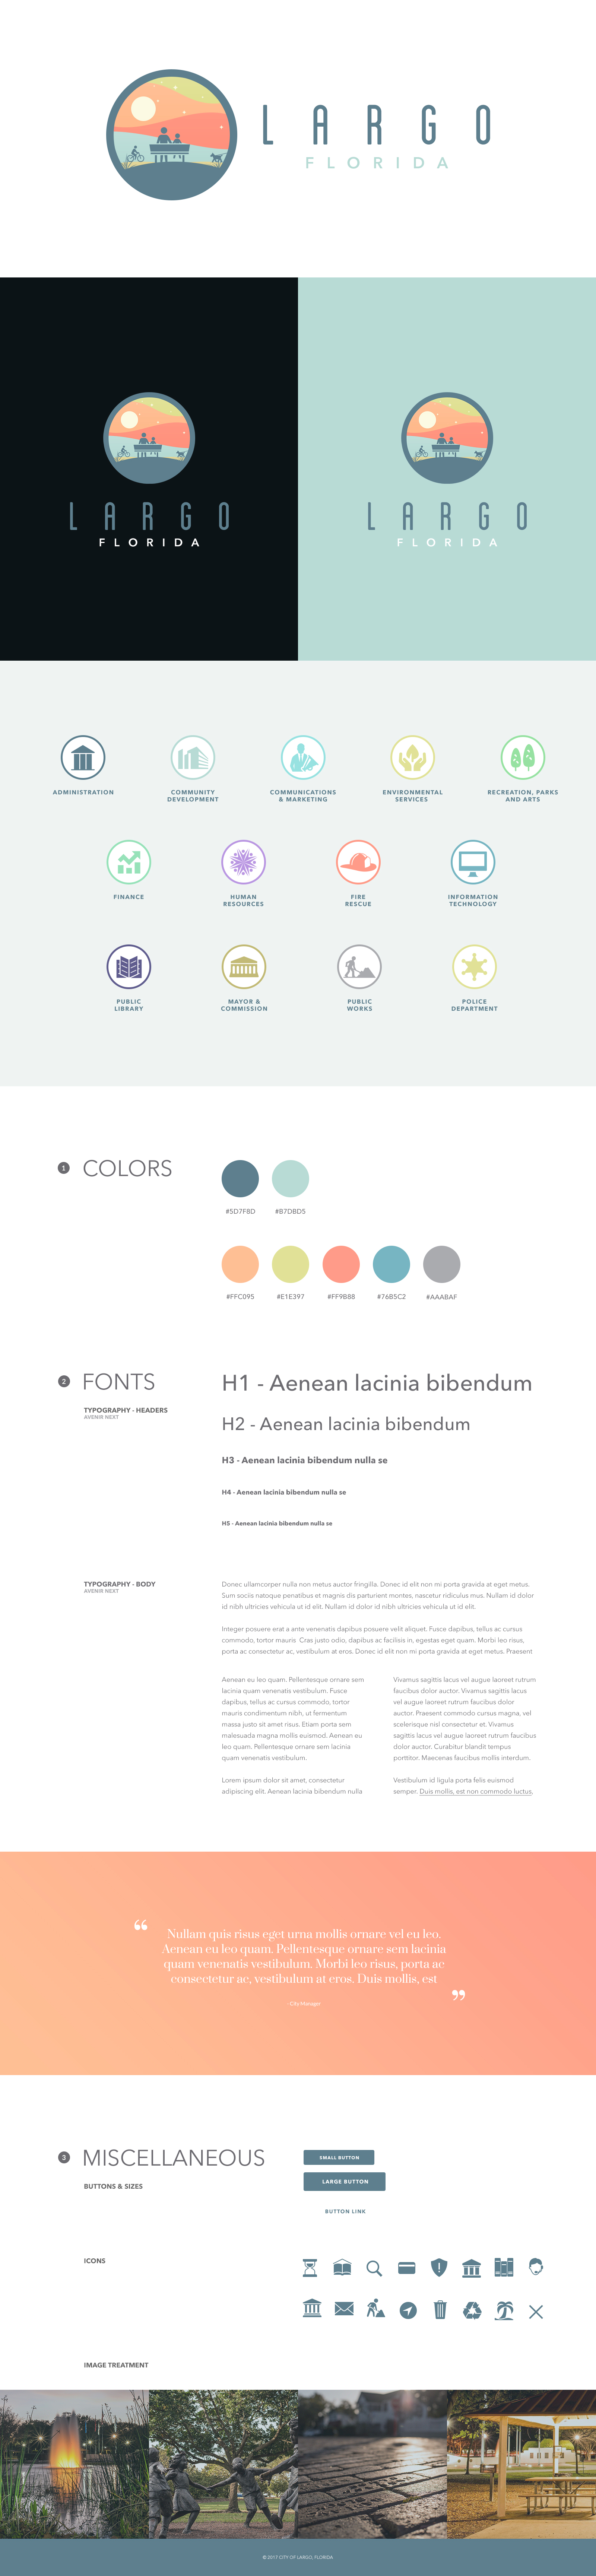 Style Guide Style Guides Style Color